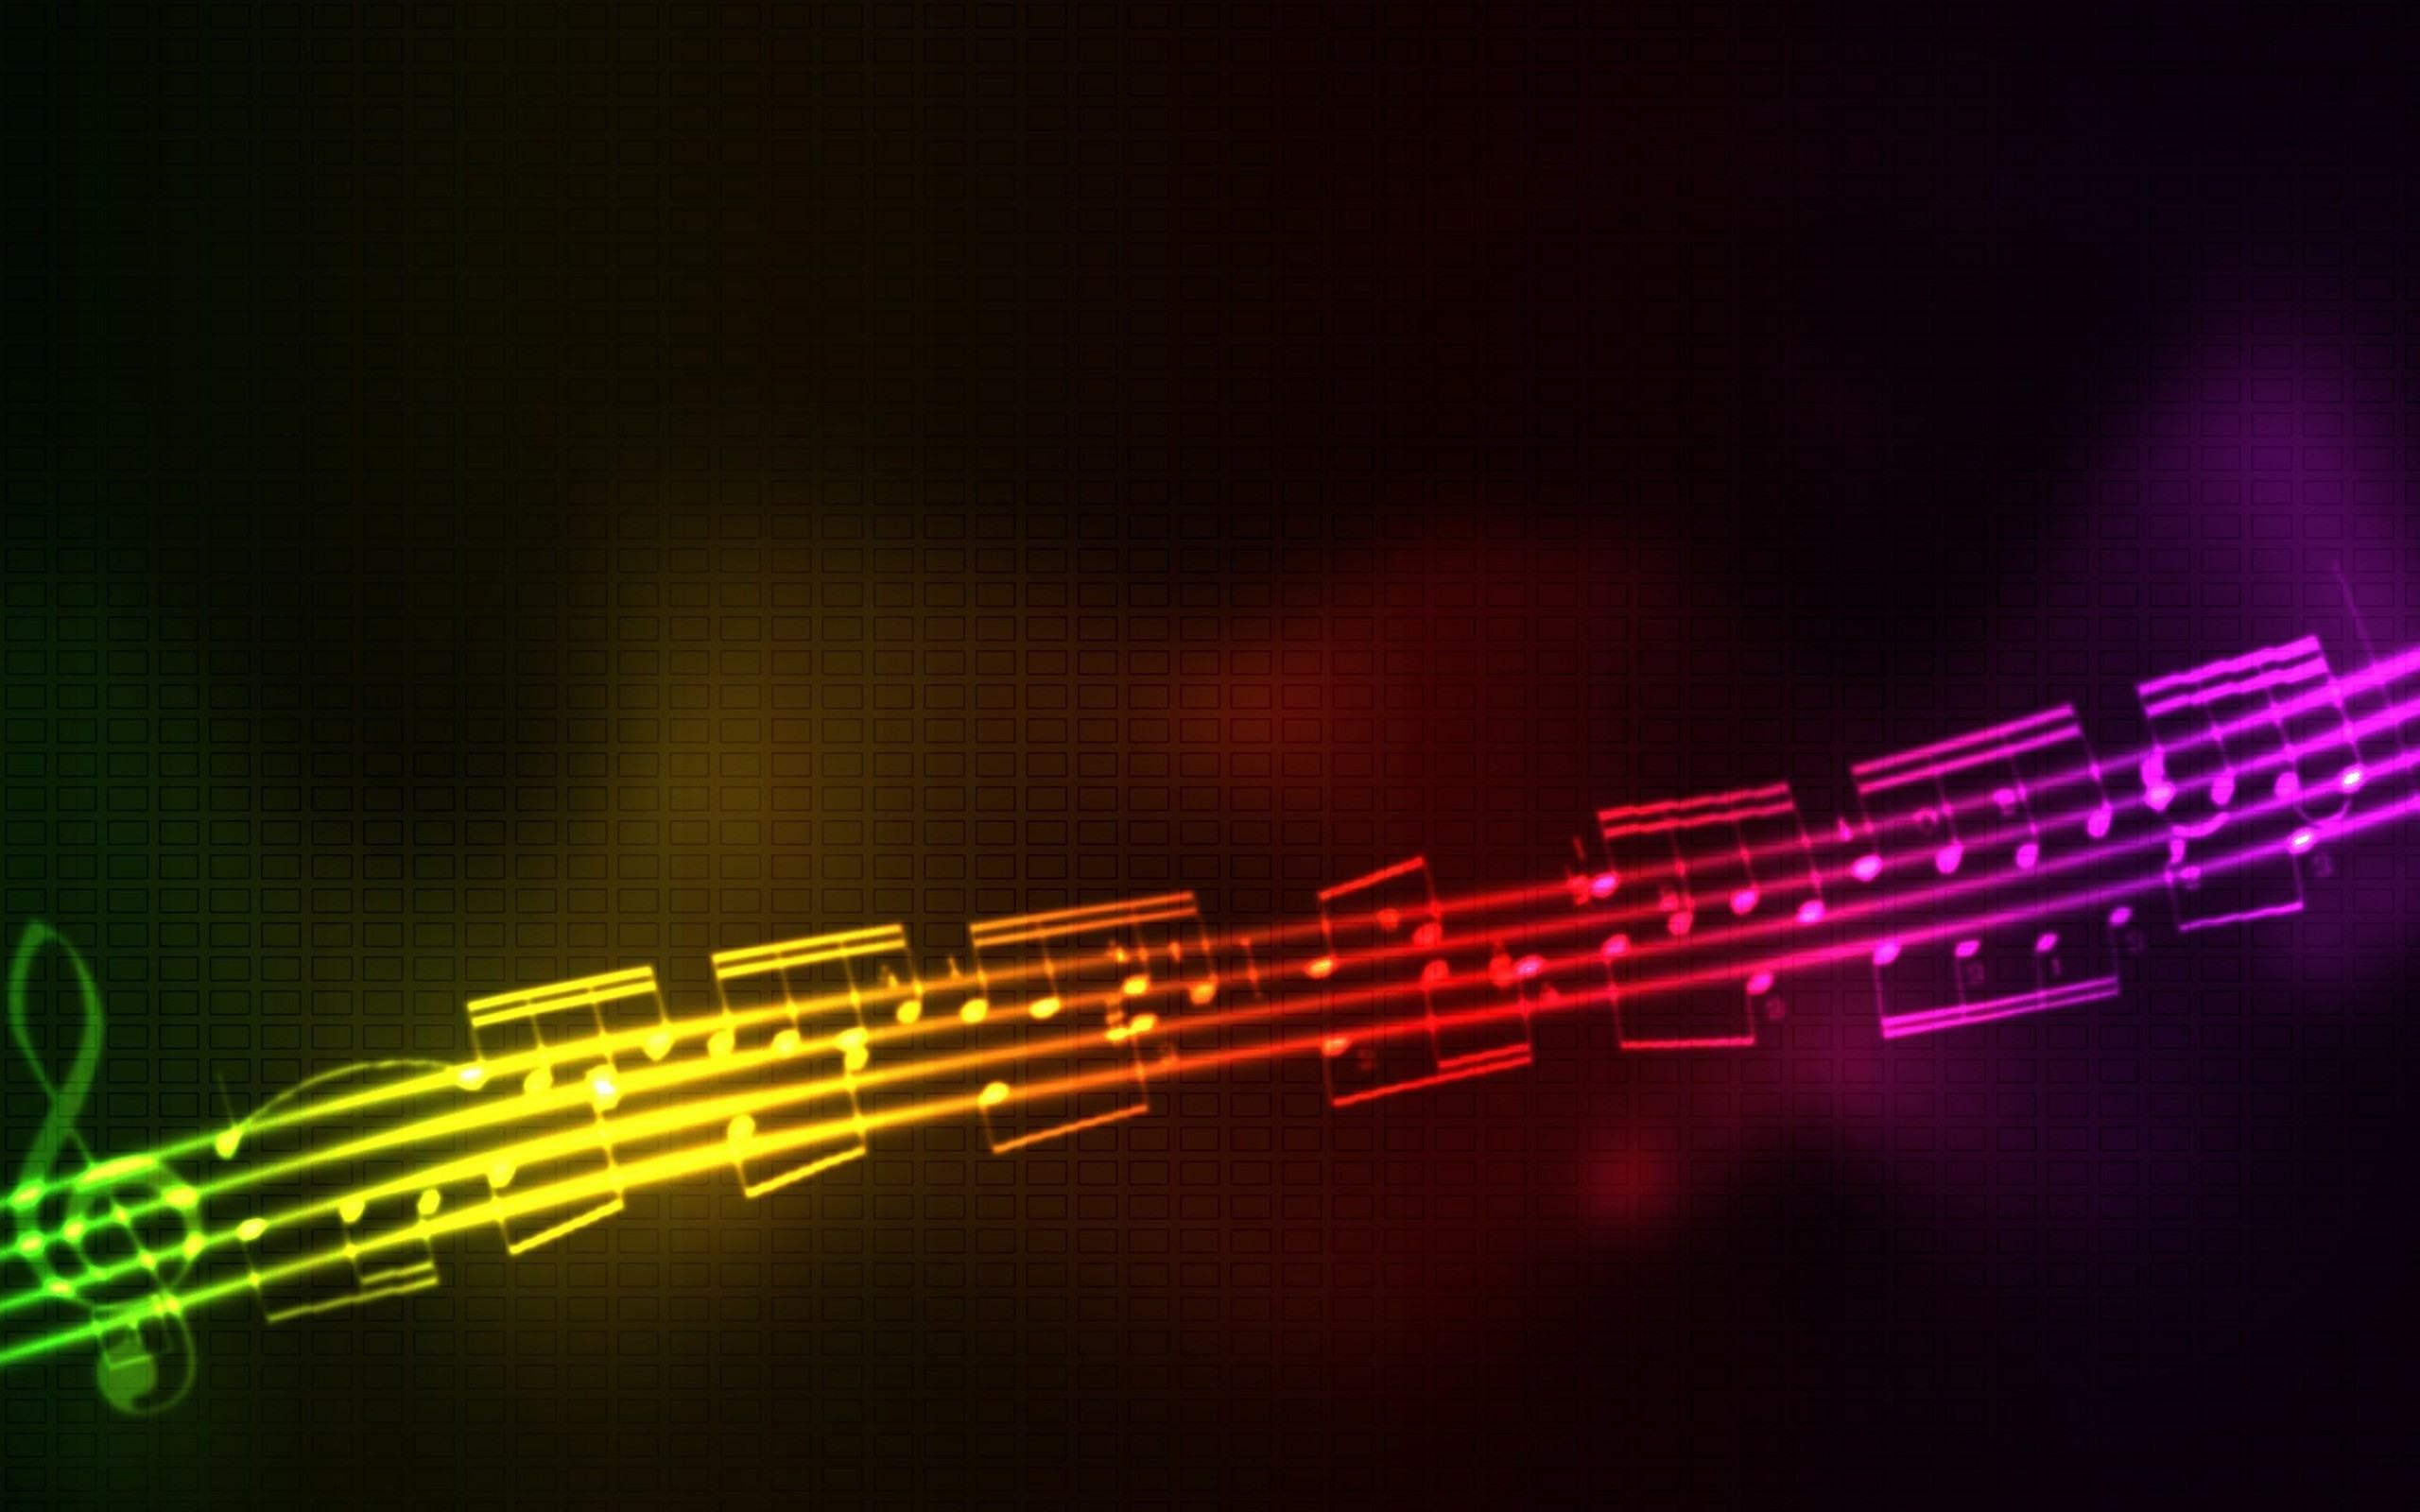 2560x1600 Cool Music Background For Iphone 5 Download 3840x2160